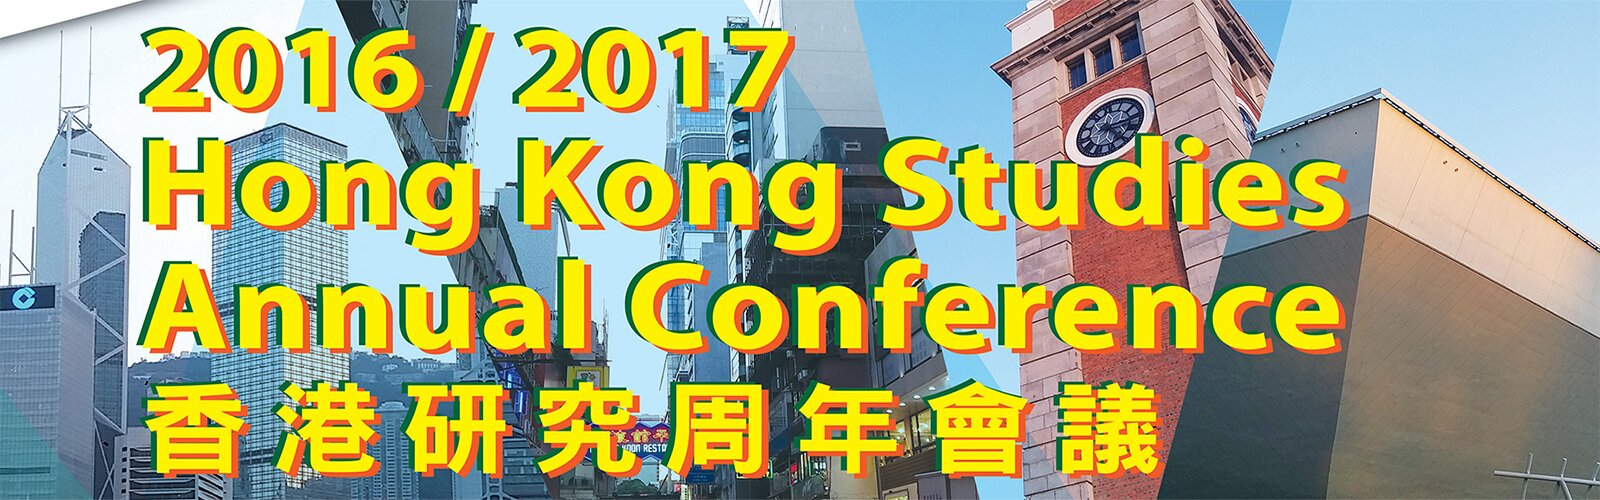 2016/2017 Hong Kong Studies Annual Conference